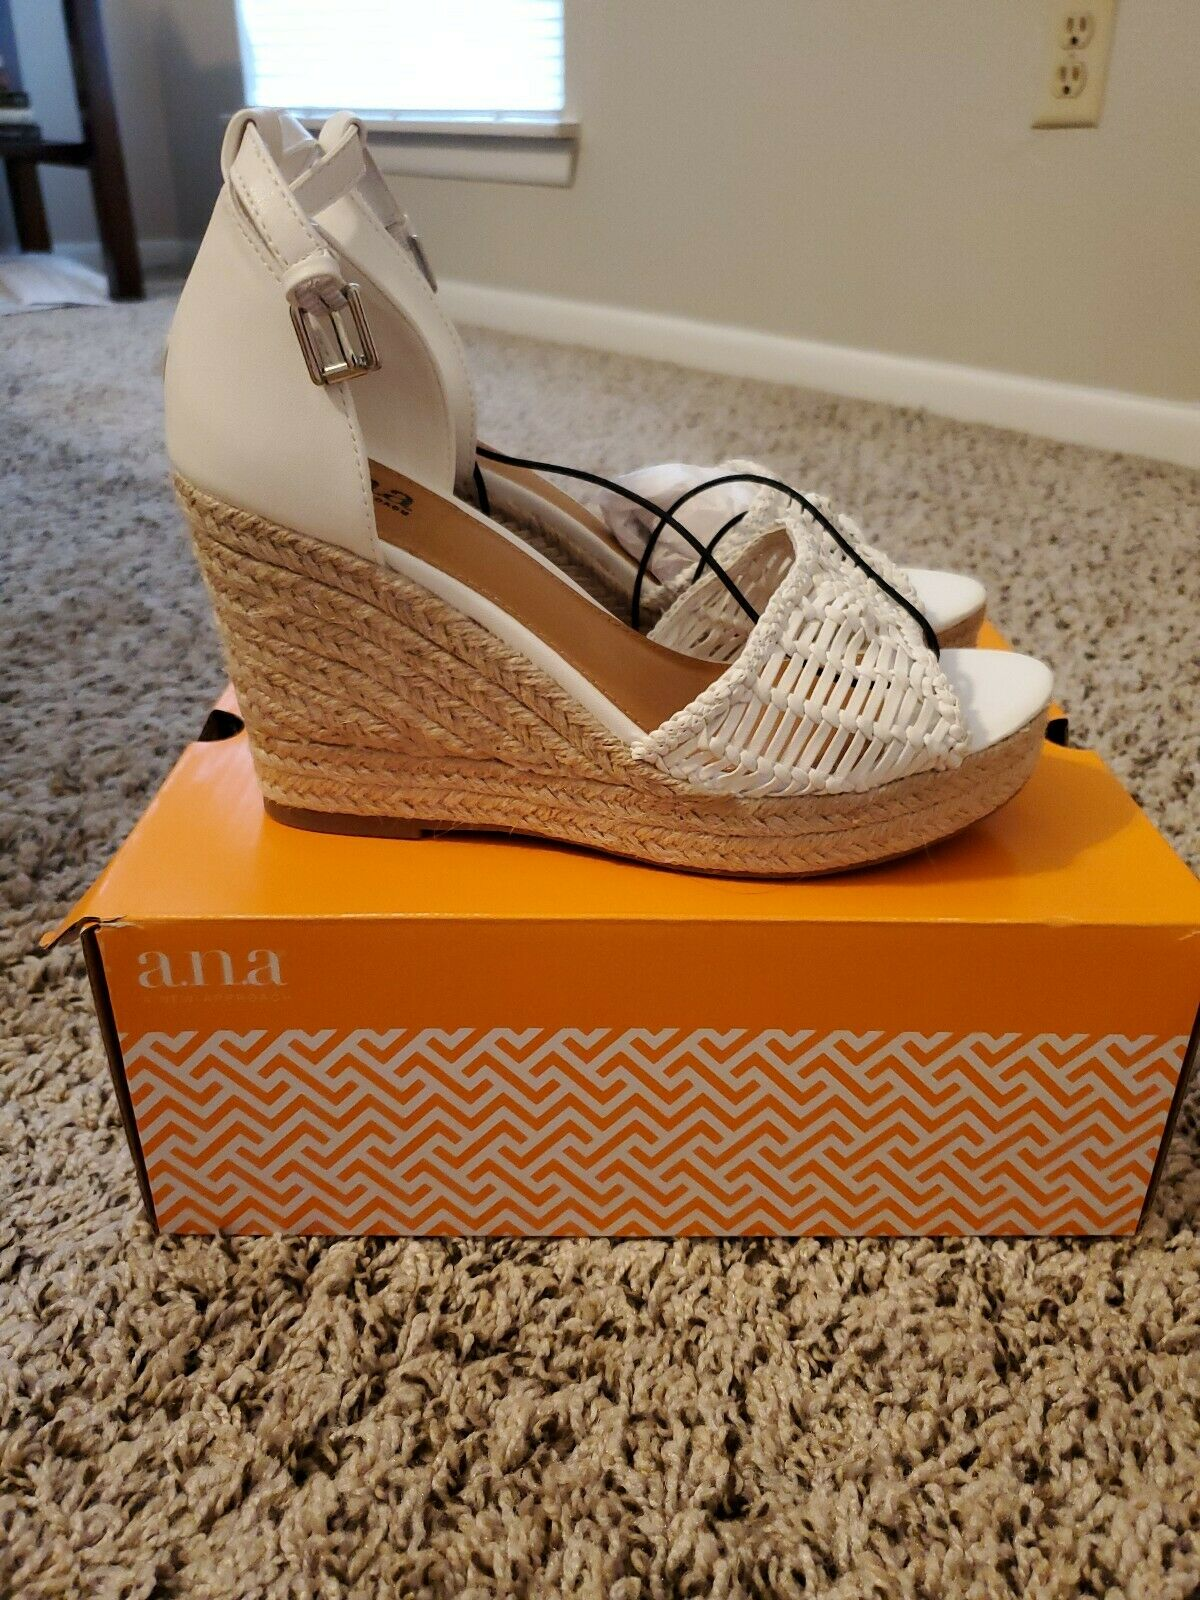 Ana a new approach shoe Size 7M